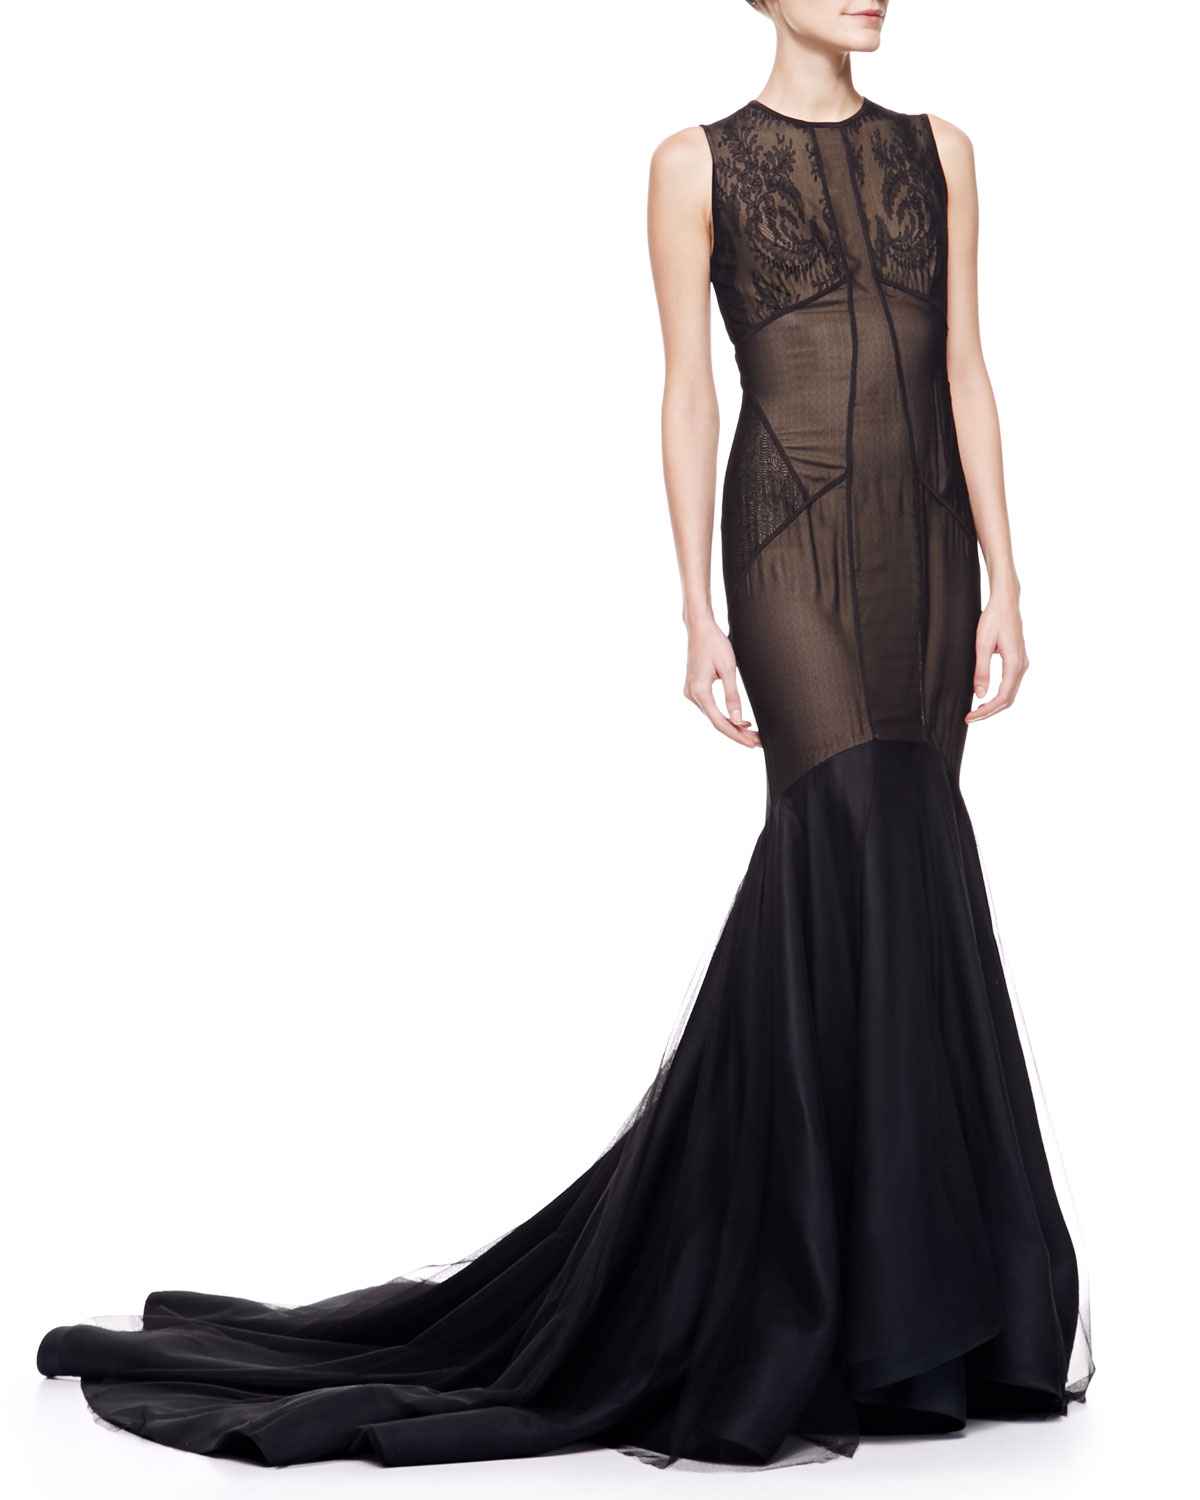 Lyst - Jason Wu Lace Tulle Trumpet Gown with Train in Black